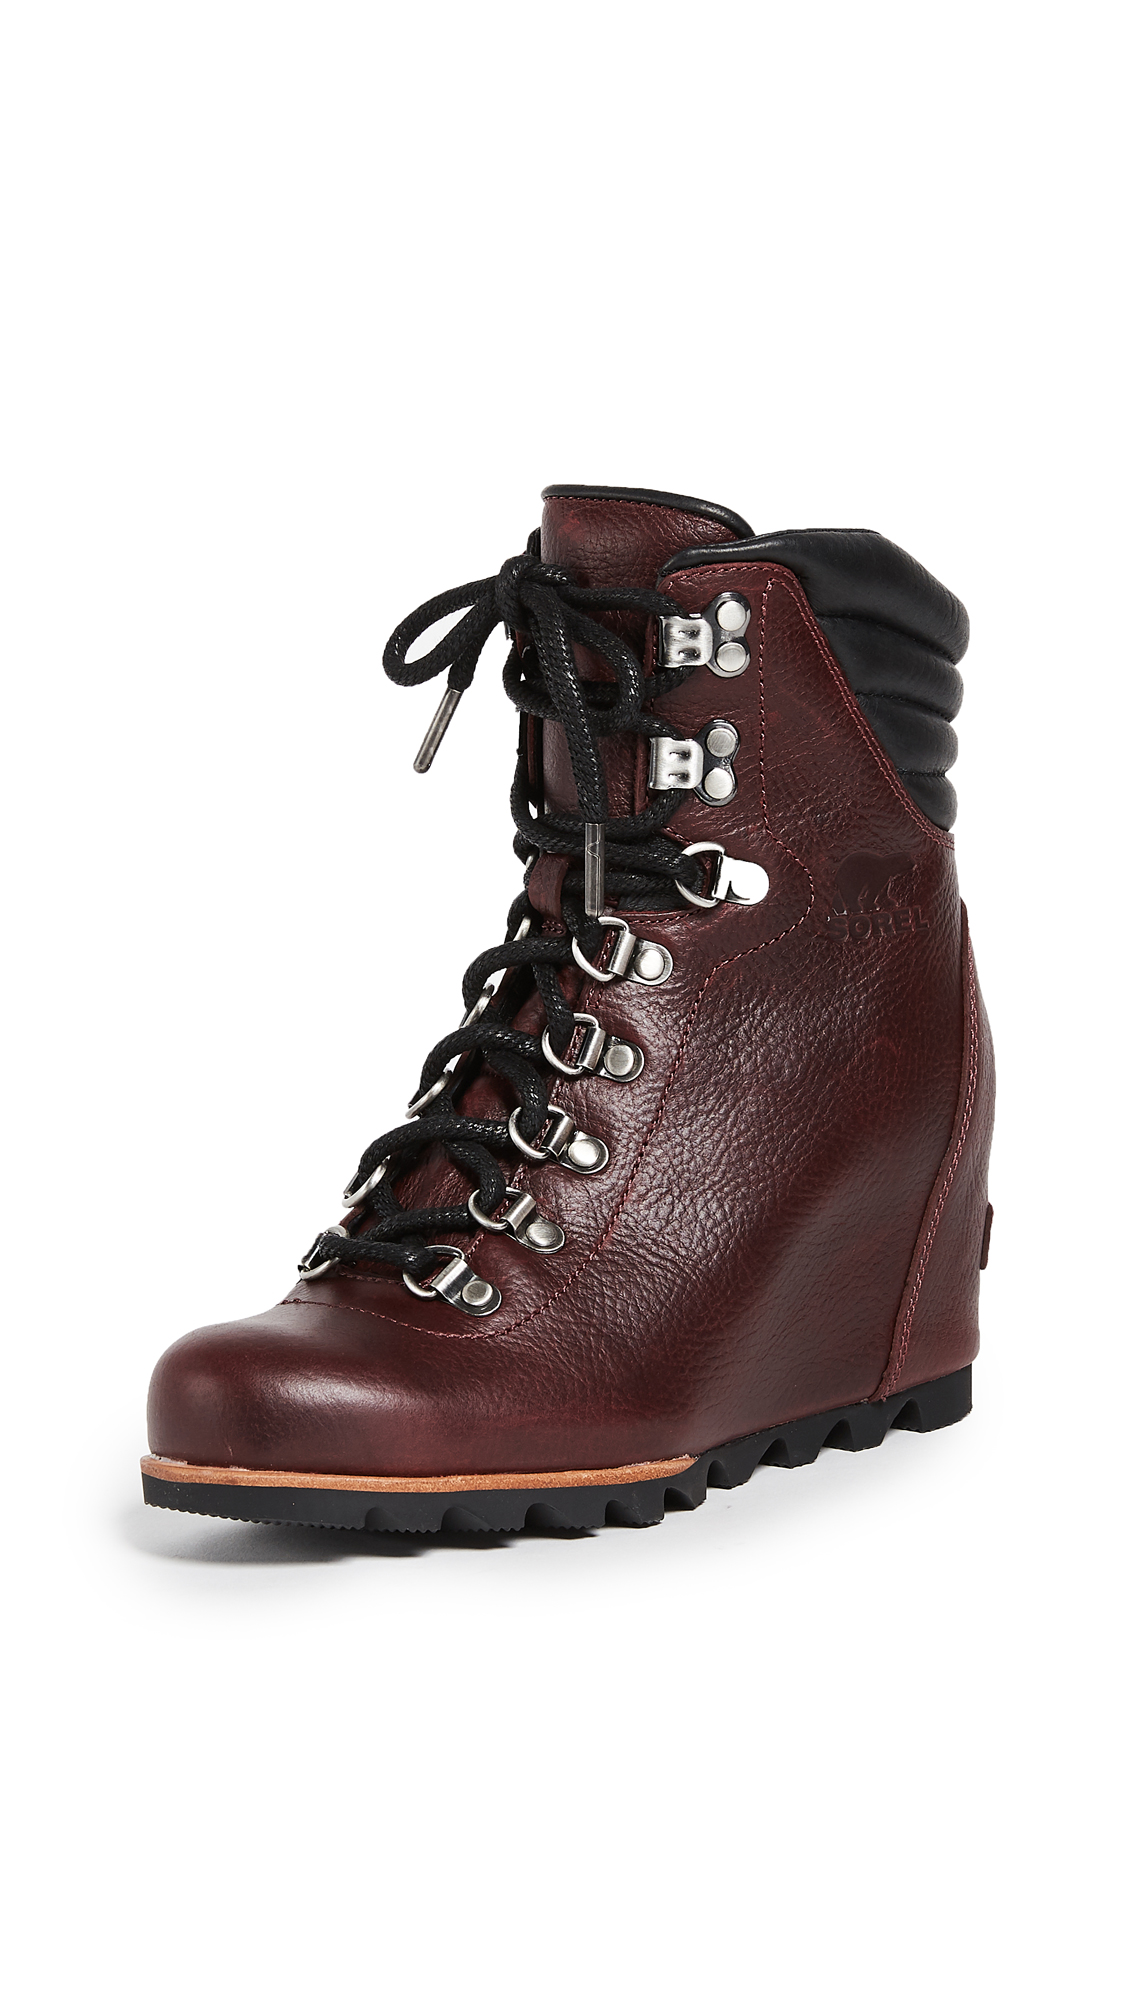 Sorel Conquest Wedge Luxe Booties - Rich Wine/Black